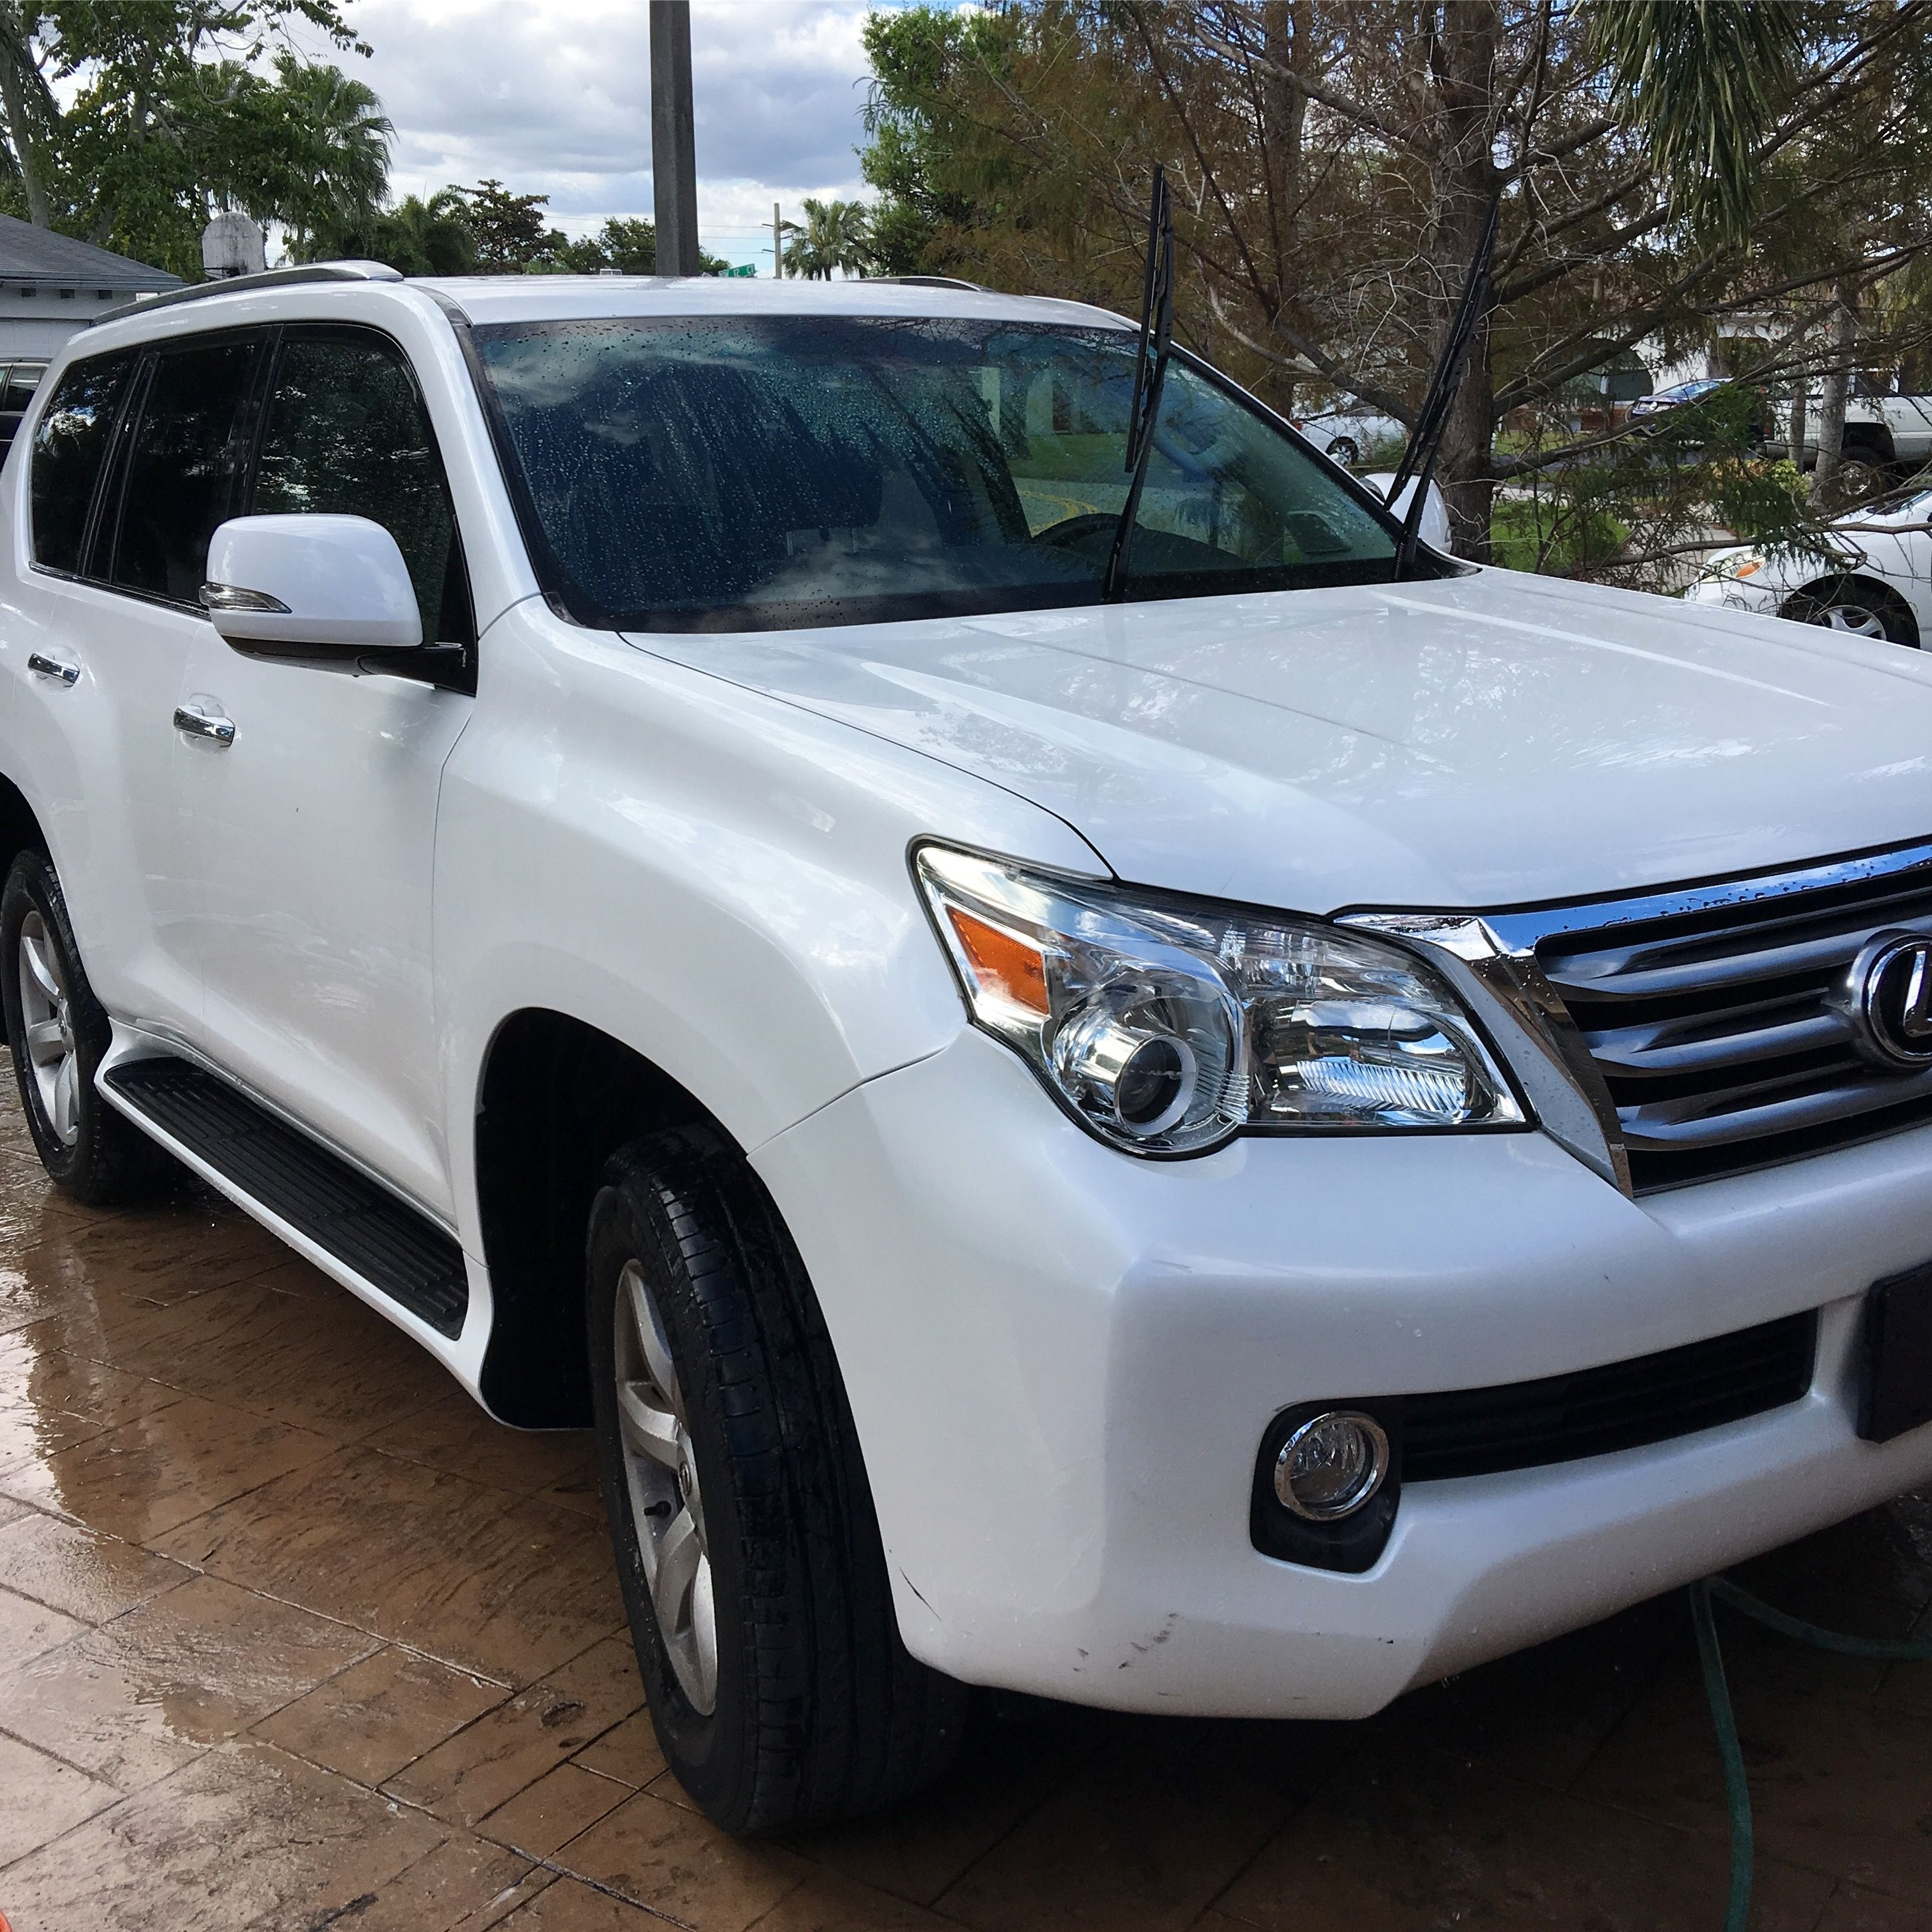 My Last Lexus Gx460 In White With Black Leather Interior Just Traded Her Prior To